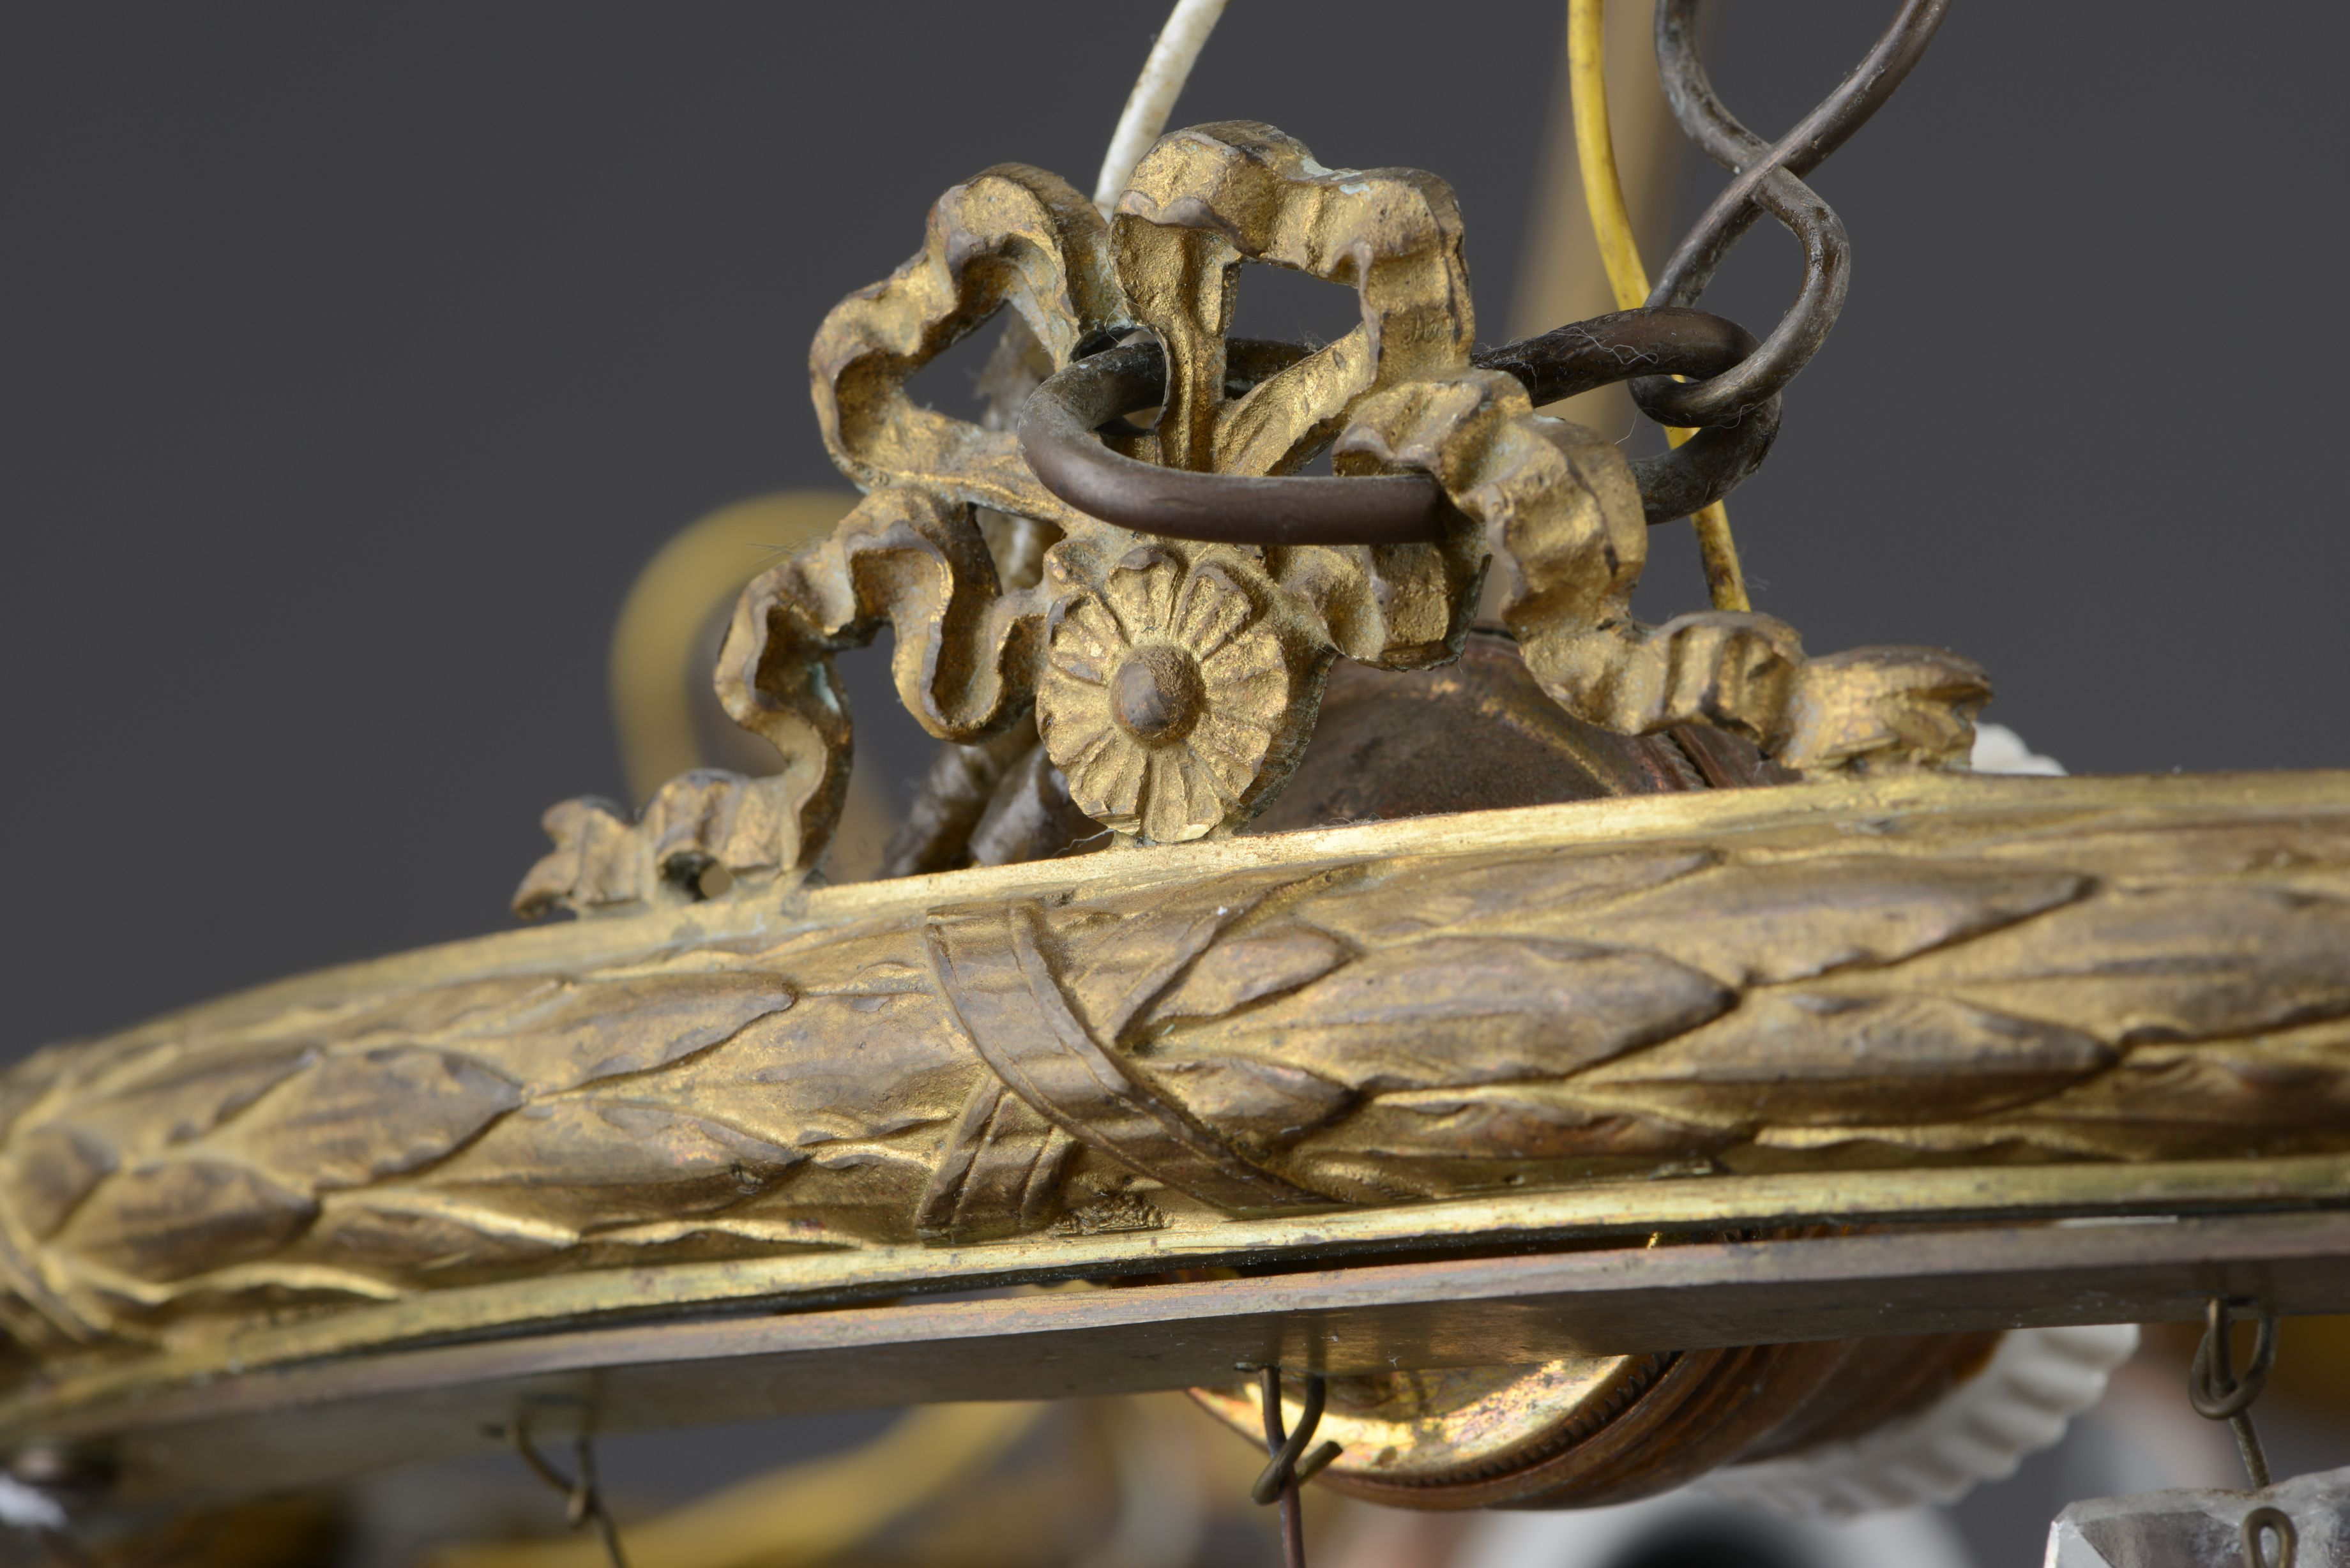 Fragment of chandelier, 1837–1899, Trakai history museum, GEK-5696. Photo by Andrius Valužis, 2017